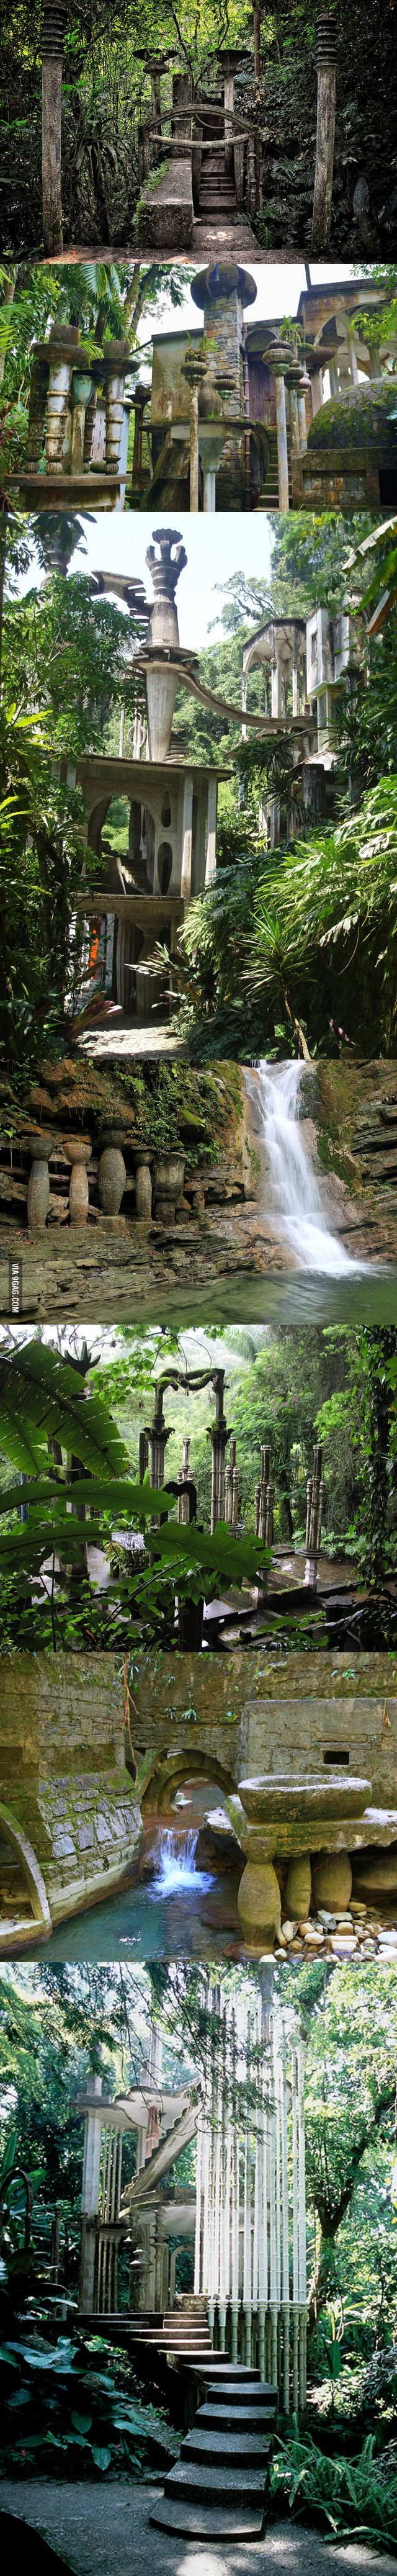 One of the most awe-inspiring places on earth is in Mexico.  Xilitla in San Luis Potosí, México